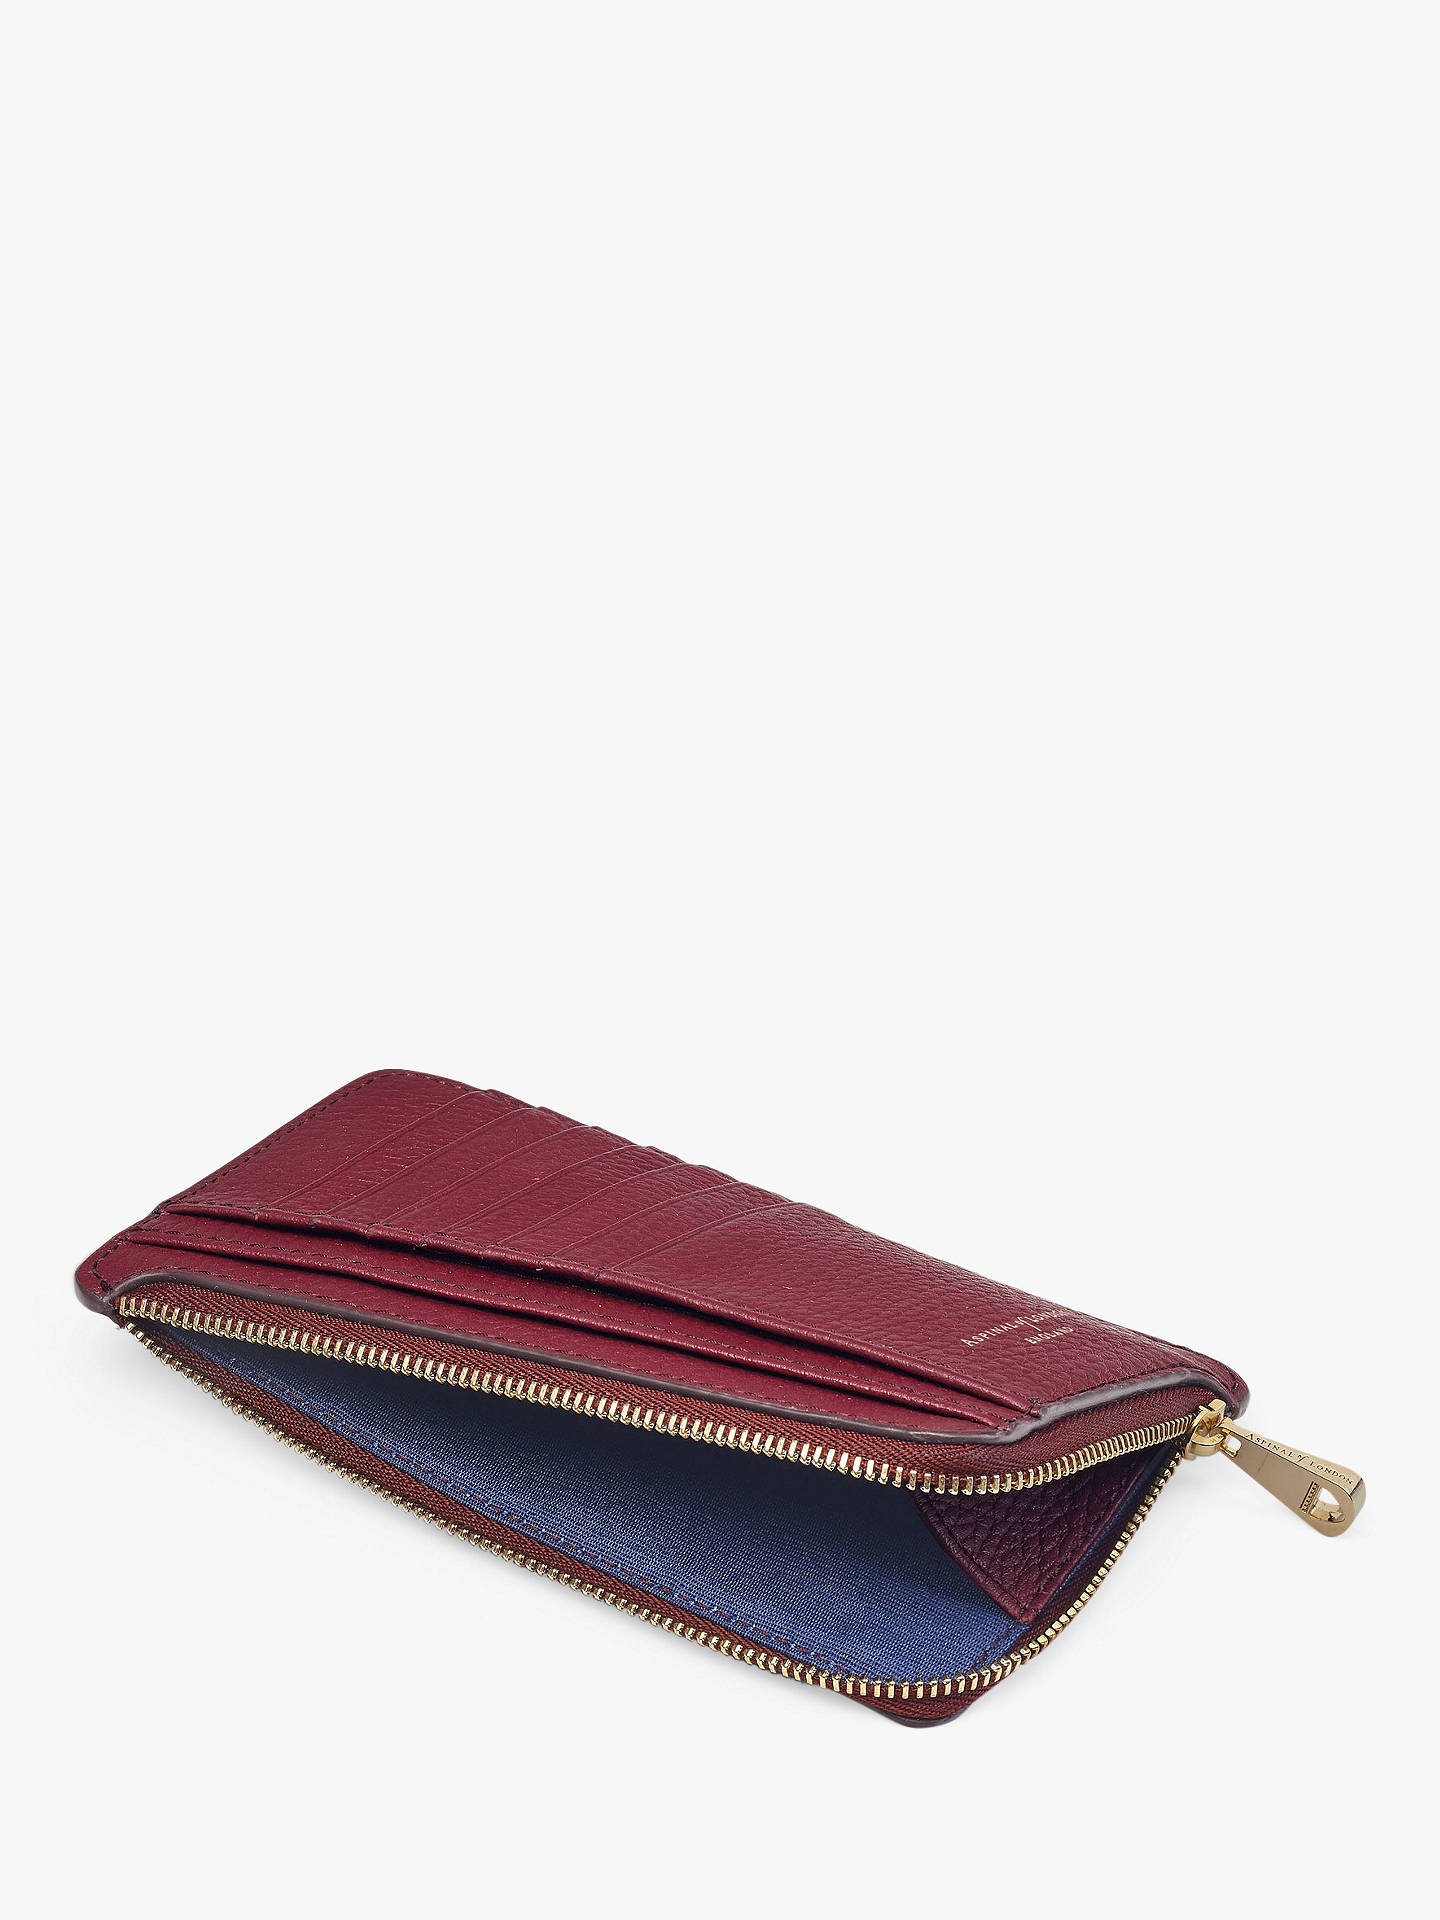 BuyAspinal of London Leather Large Zipped Coin Purse, Bordeaux Online at johnlewis.com